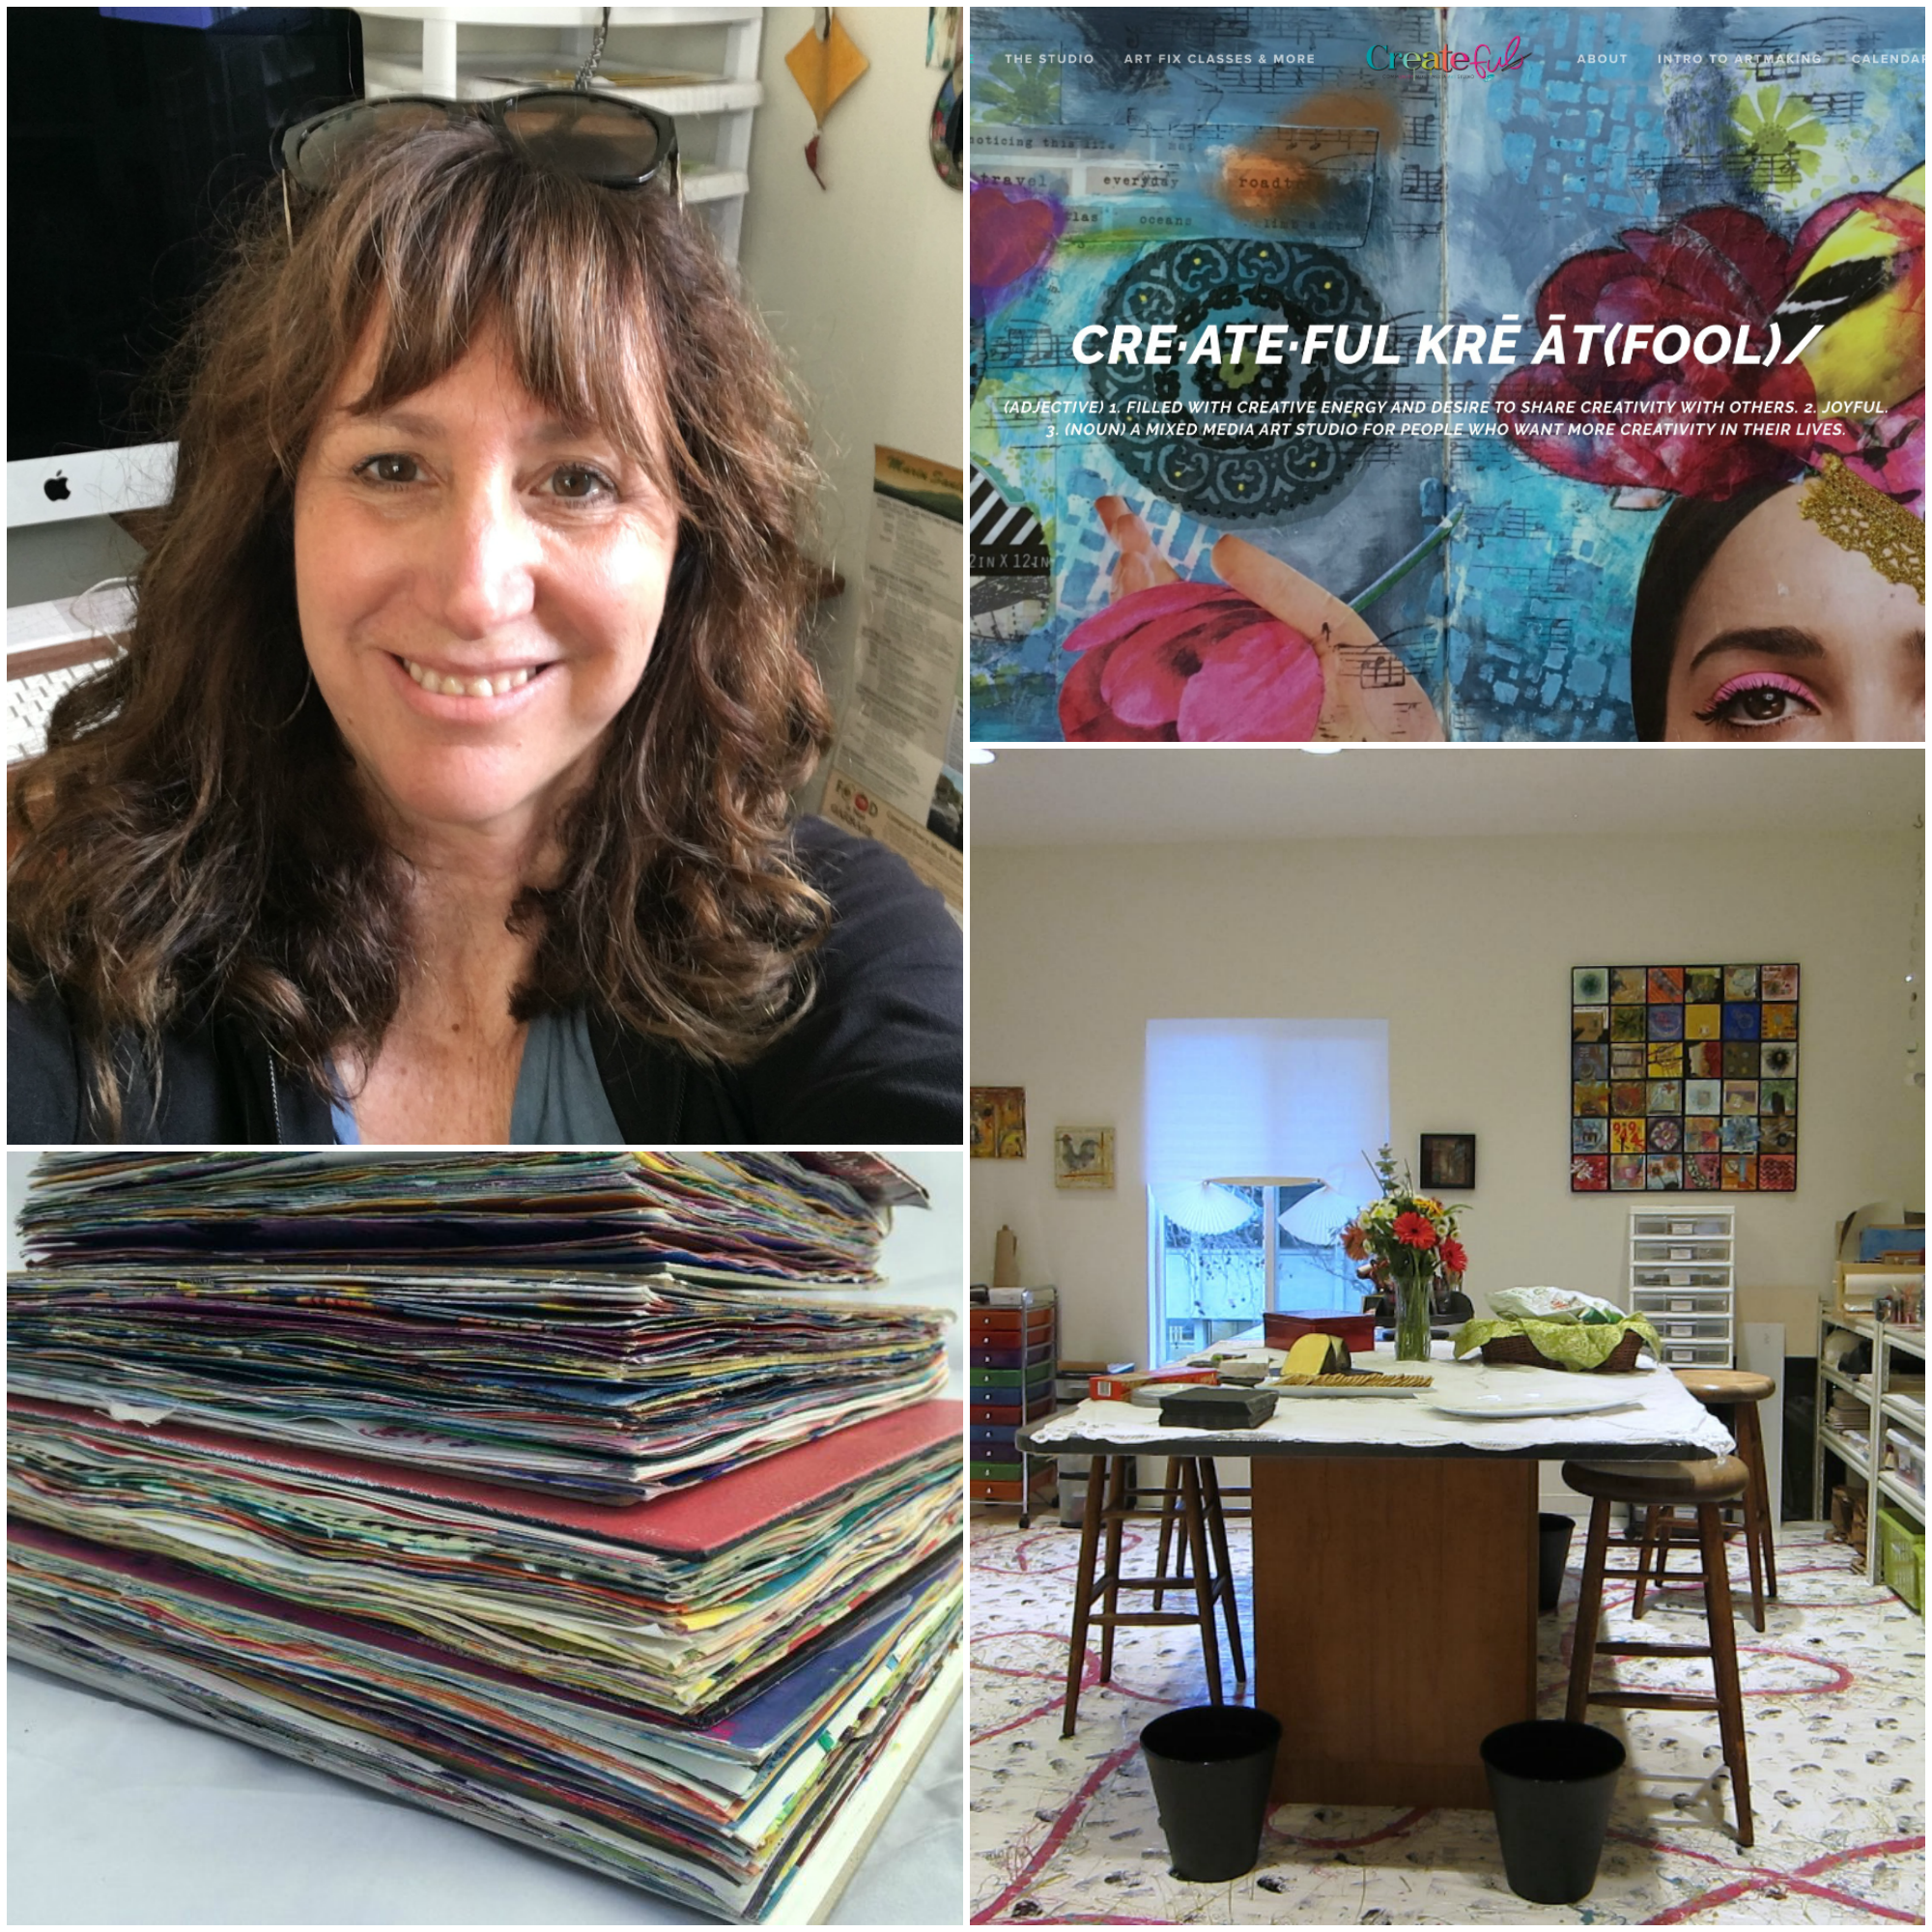 Denise Herman | Createful Studio   Empowering creative self expression and joyful art-making as a way of life.  Instagram @denise.createfulstudio   Facebook Createful Studio  www.createfulstudio.com   Favorite Exercise: Pistol squats on the TRX (because I need them!)